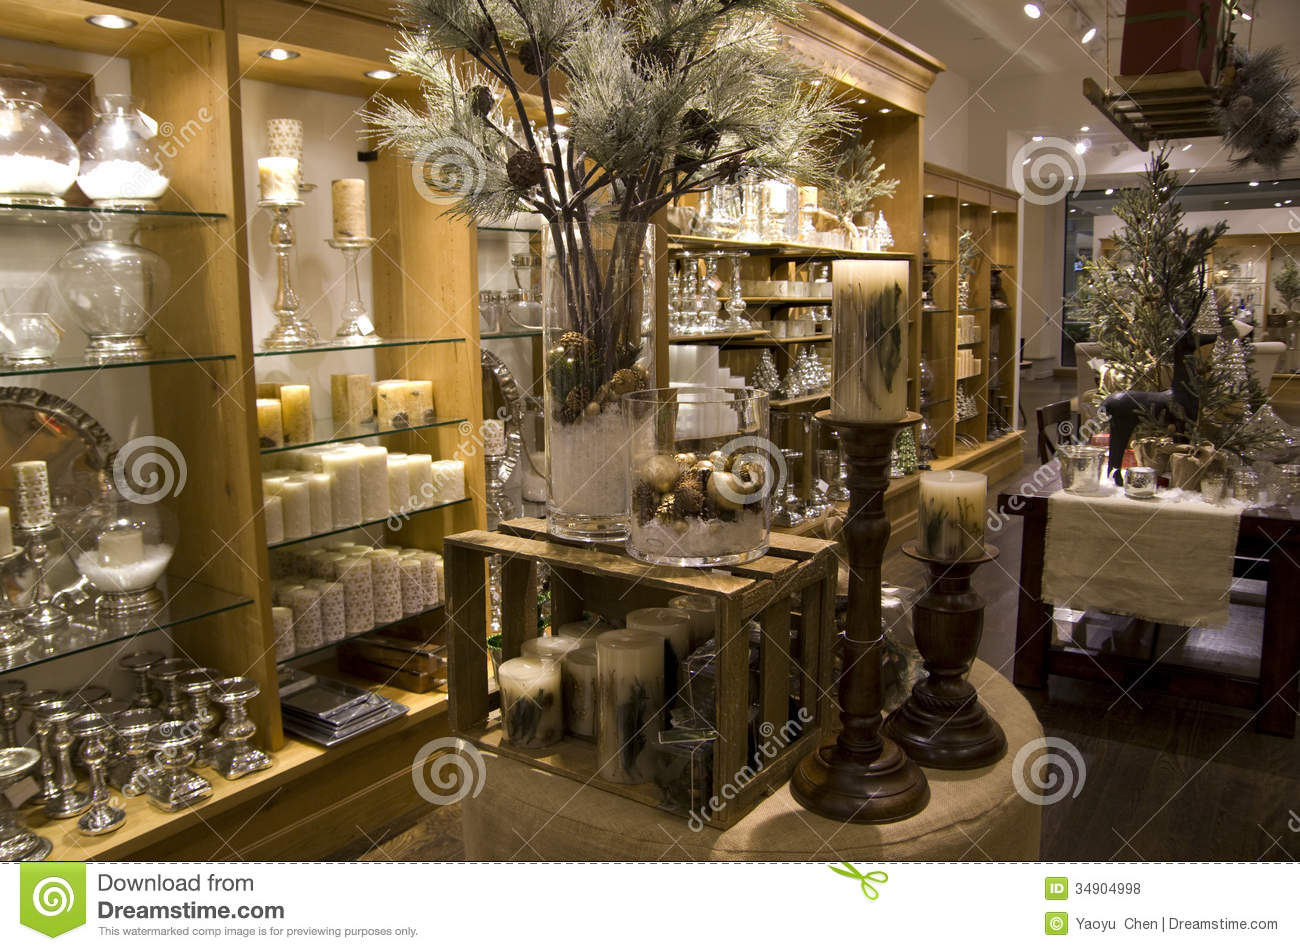 Home decor store stock photo image of lighting shelves for Home interior decor stores